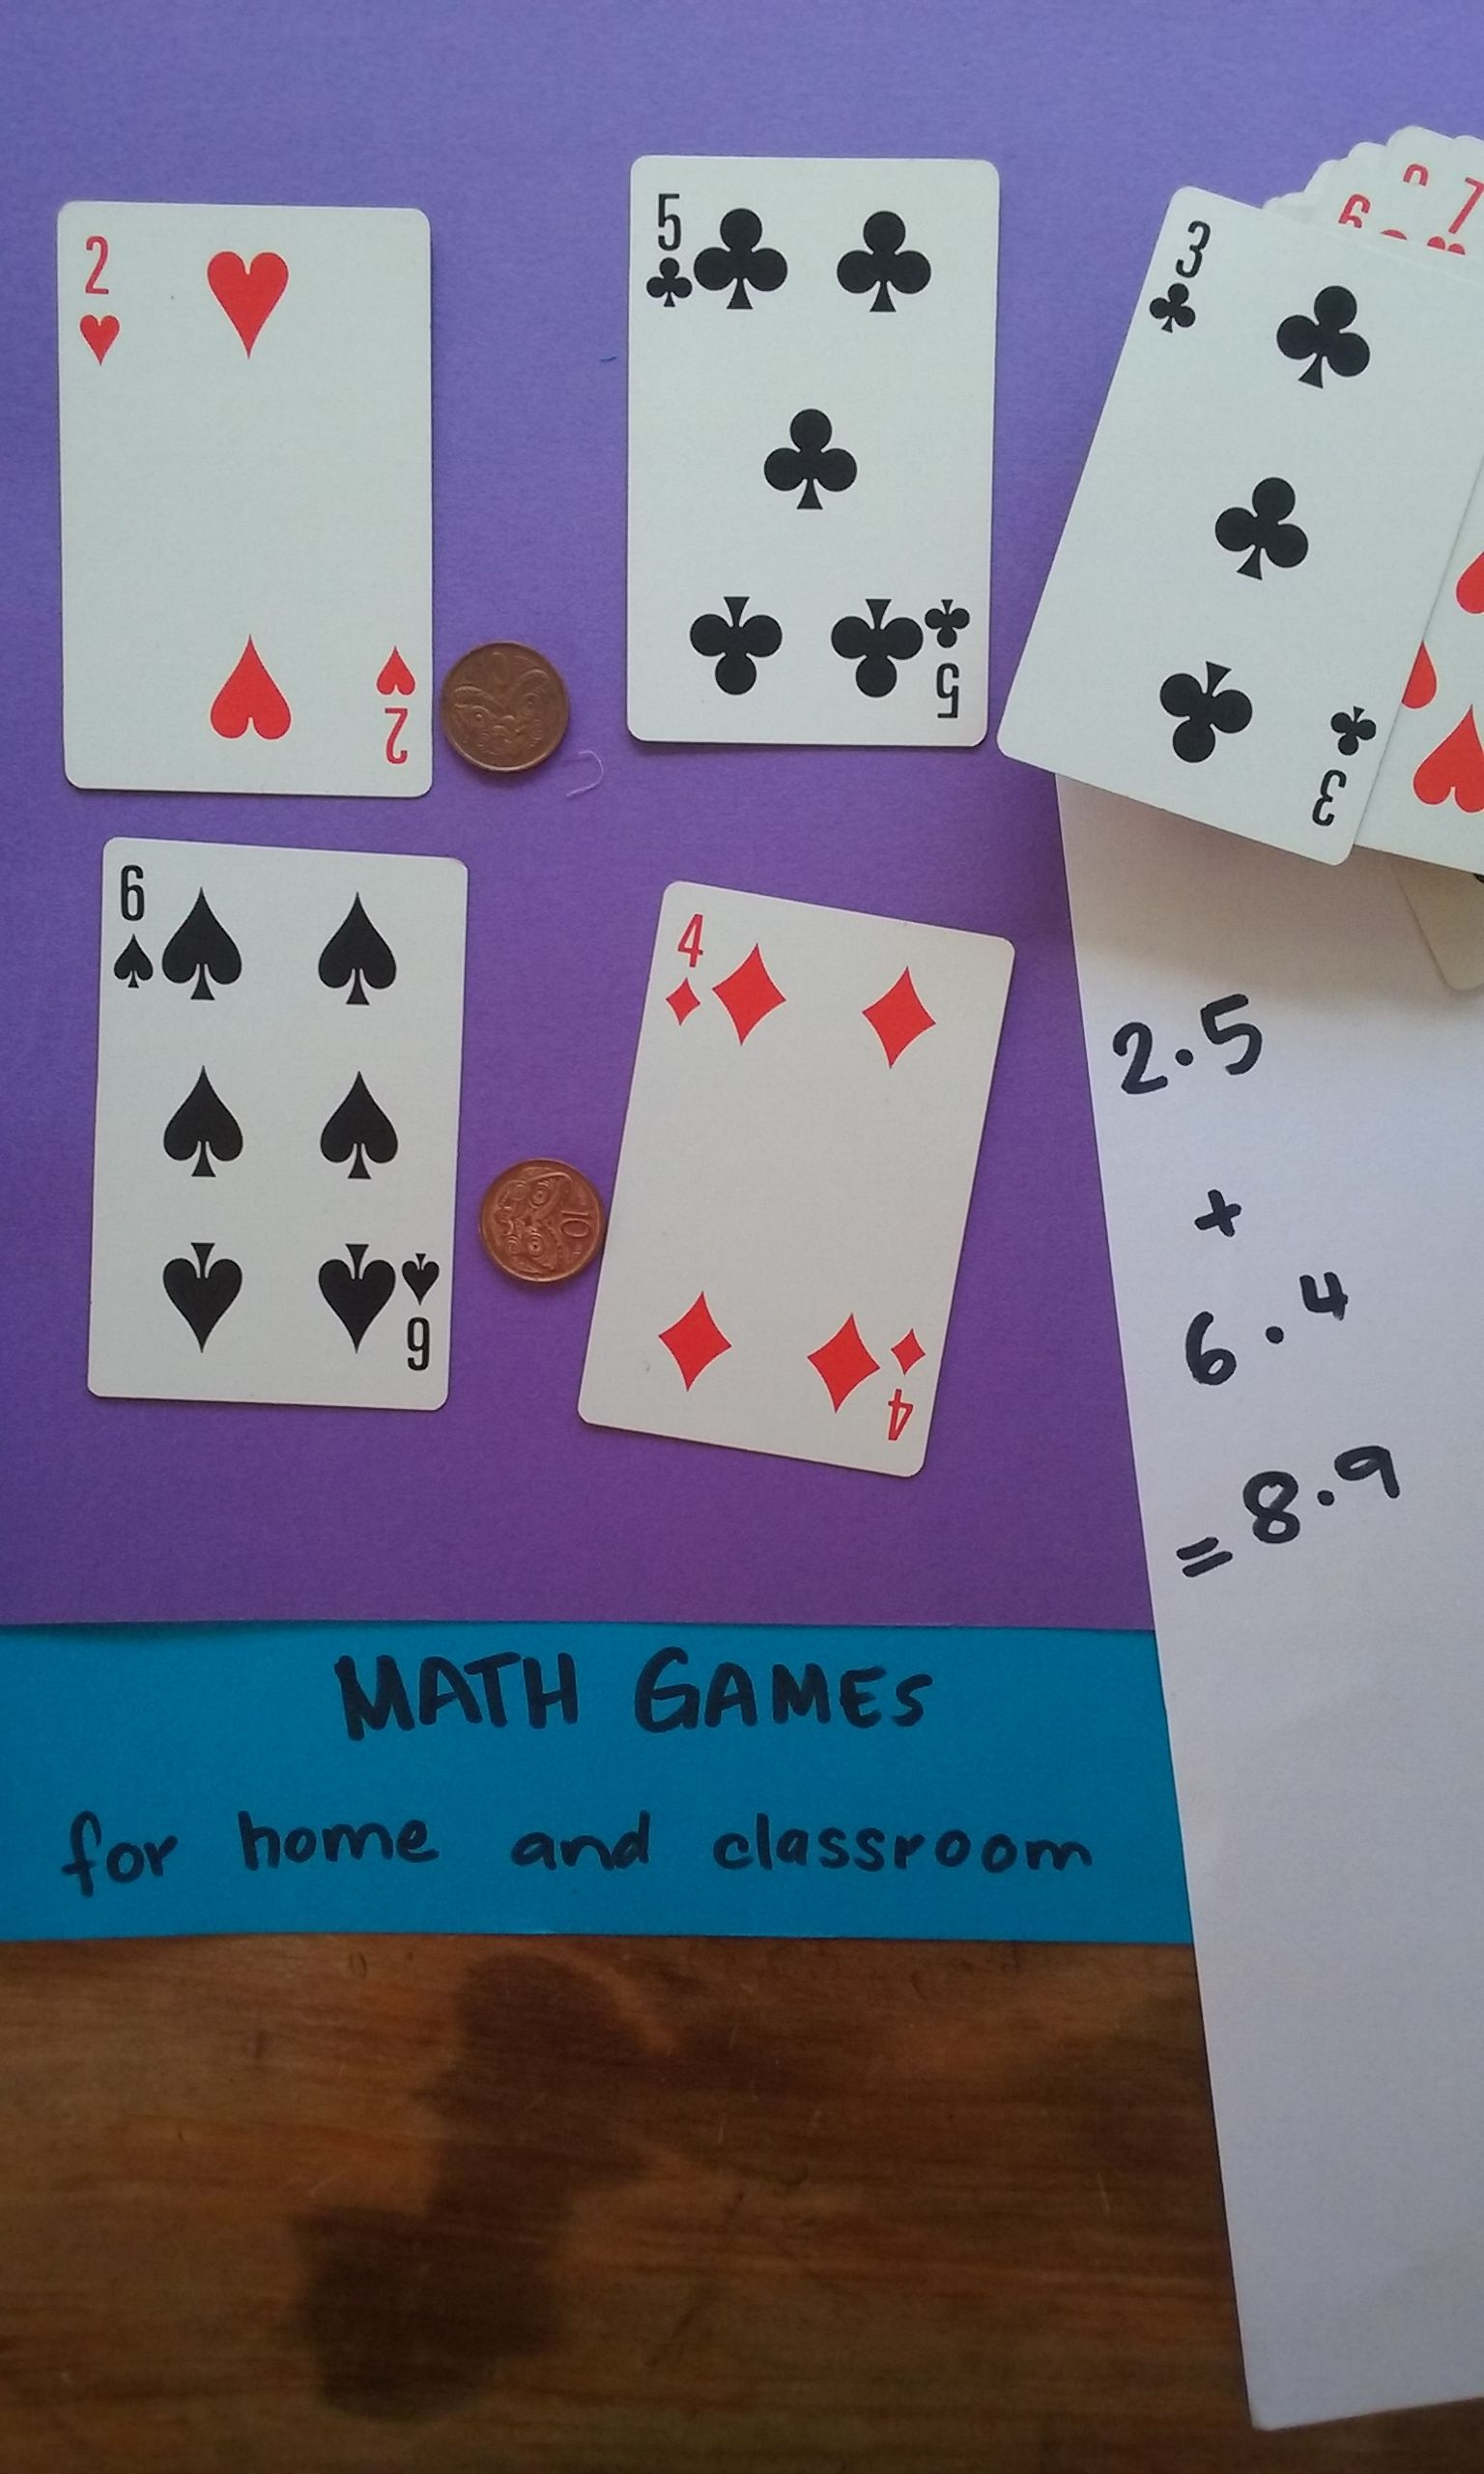 Maths games for home and classroom | Maths, Decimal places and Gaming